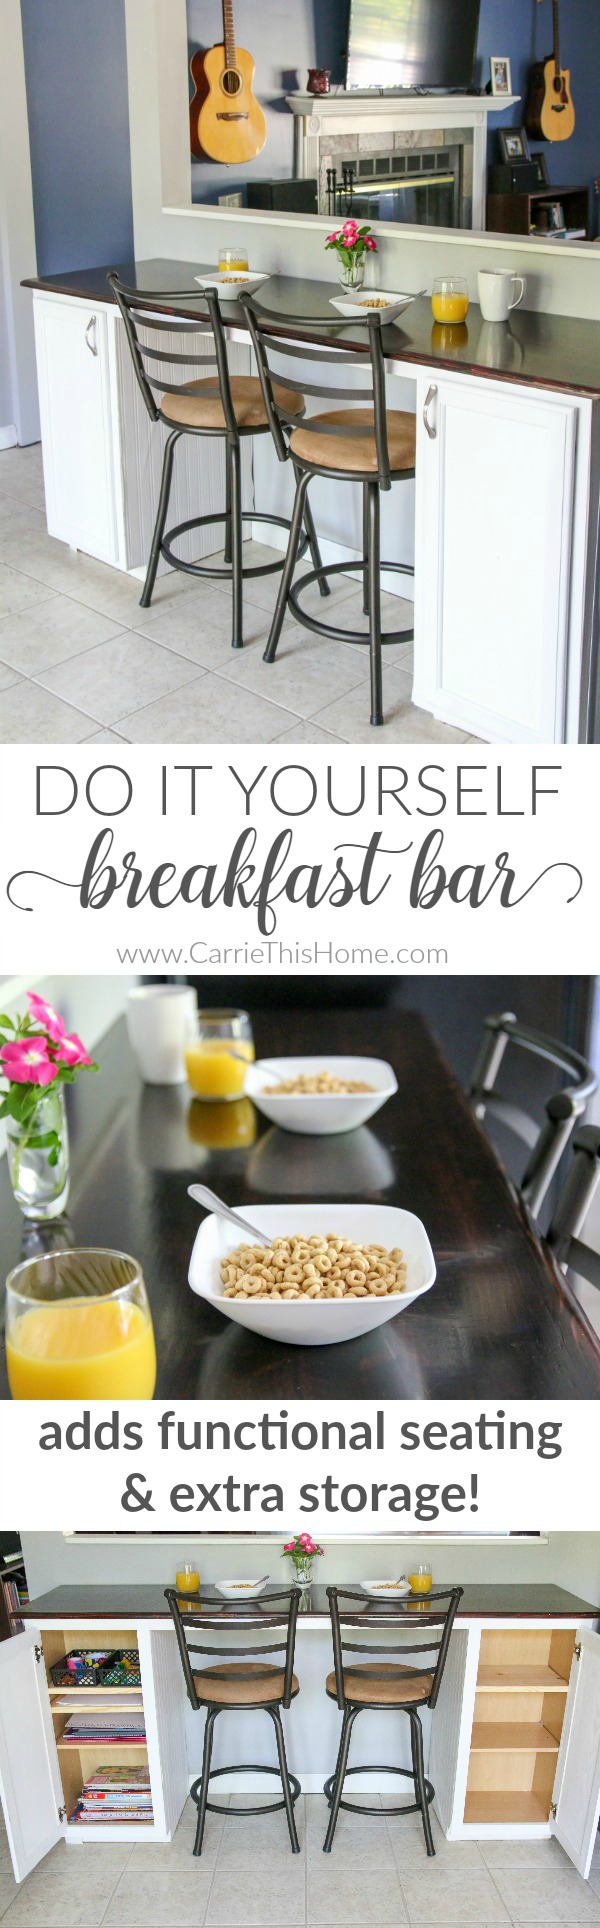 Easy way to add more seating and storage to your home! This DIY breakfast bar is easy & can be done in a weekend! See the full tutorial at CarrieThisHome.com